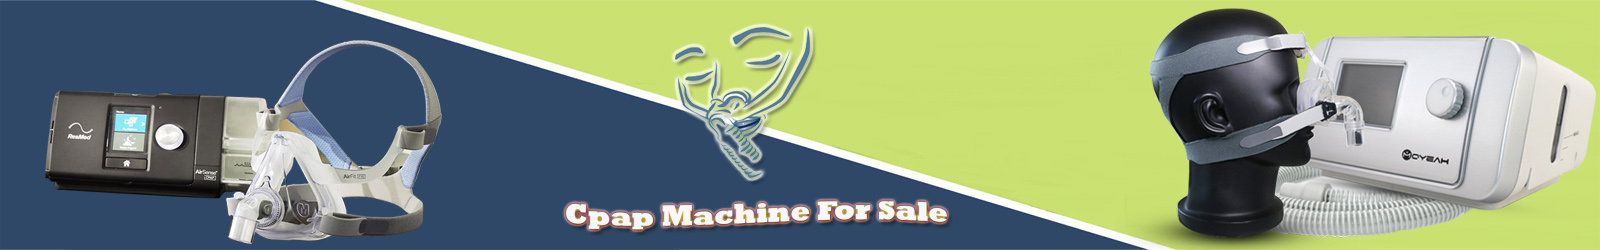 Cpap Machine For Sale | The finest in cpap machine for sale